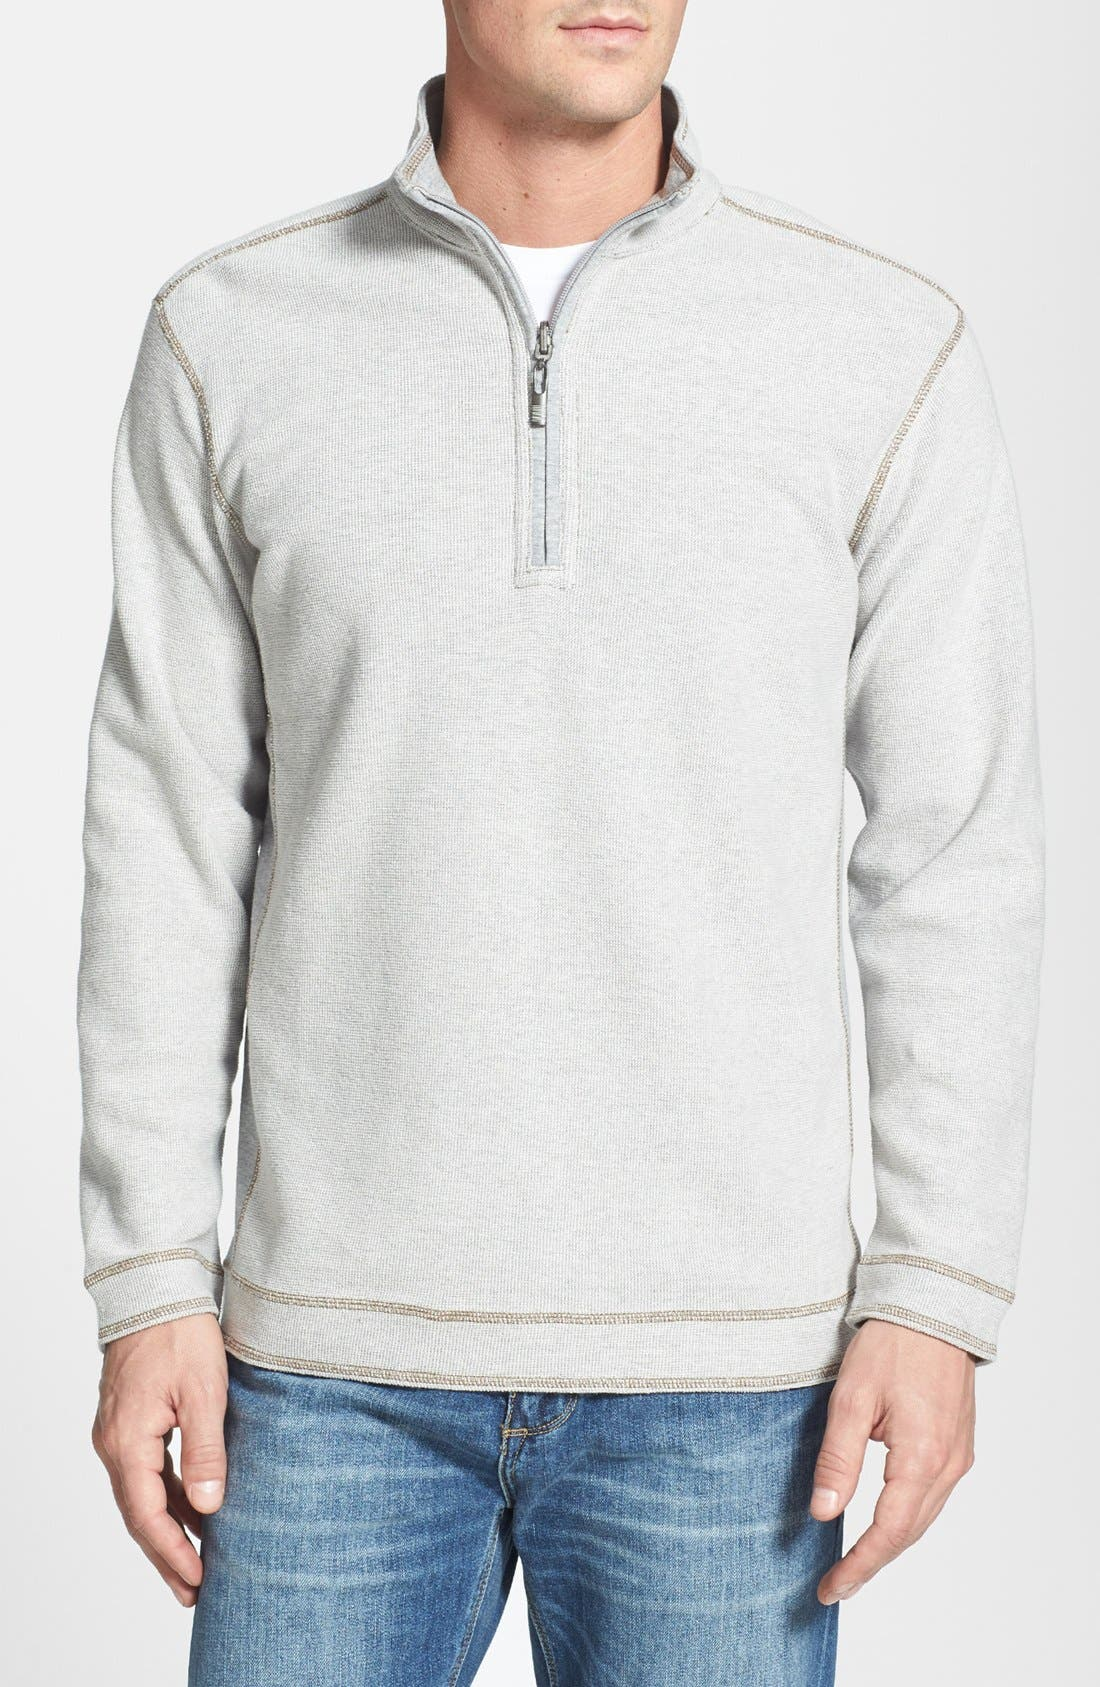 Main Image - Tommy Bahama Denim 'Grand Isles' Reversible Half Zip Sweatshirt